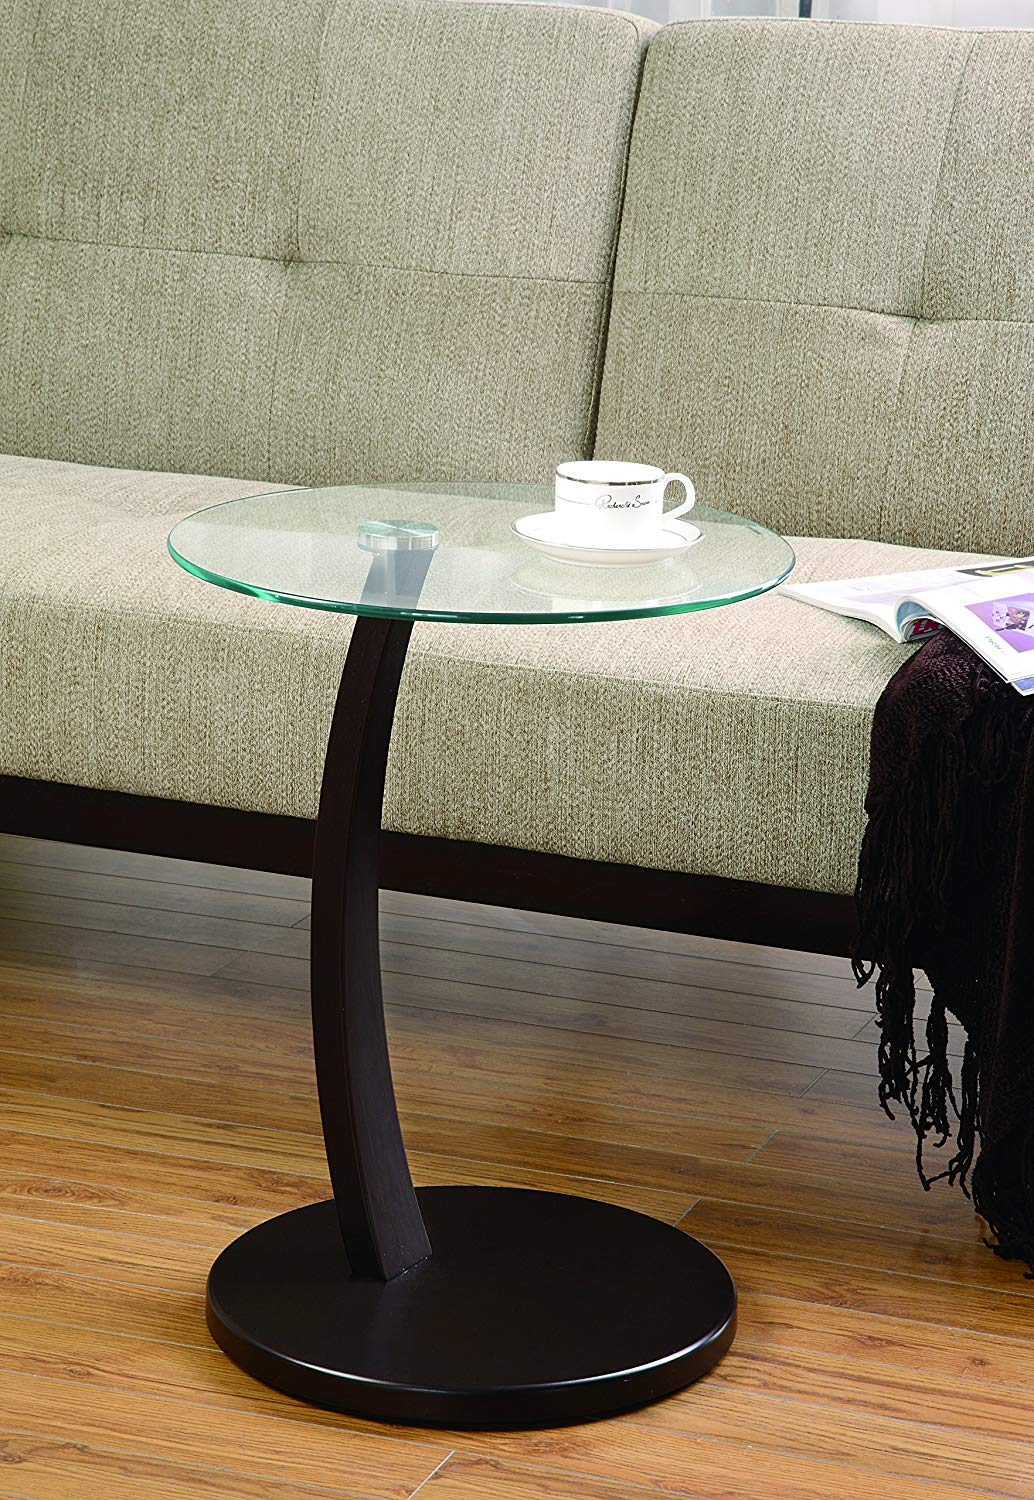 coaster home furnishings accent table with round glass kitchen top cappuccino and clear dining pier one mirrored desk plastic garden wall mounted drop leaf outdoor wicker side